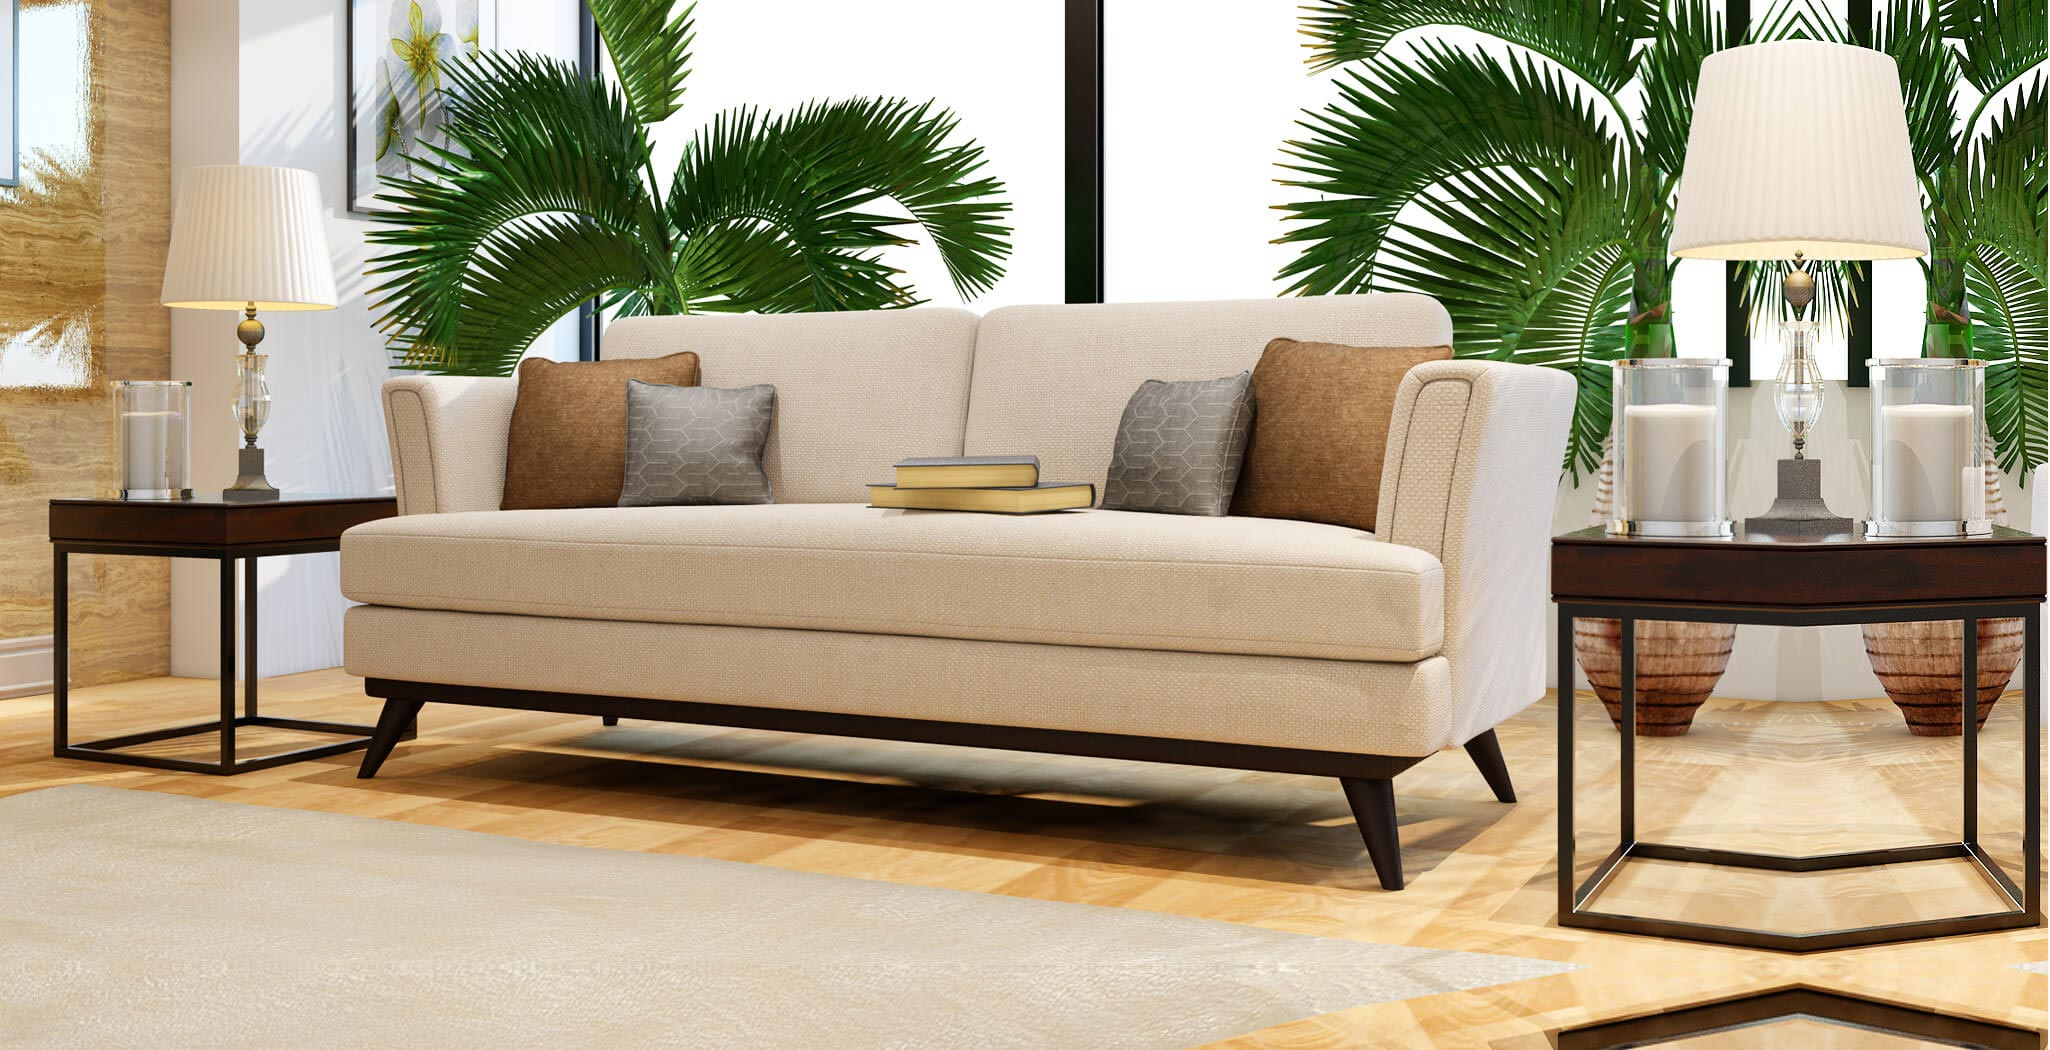 antalya sofa furniture gallery 1